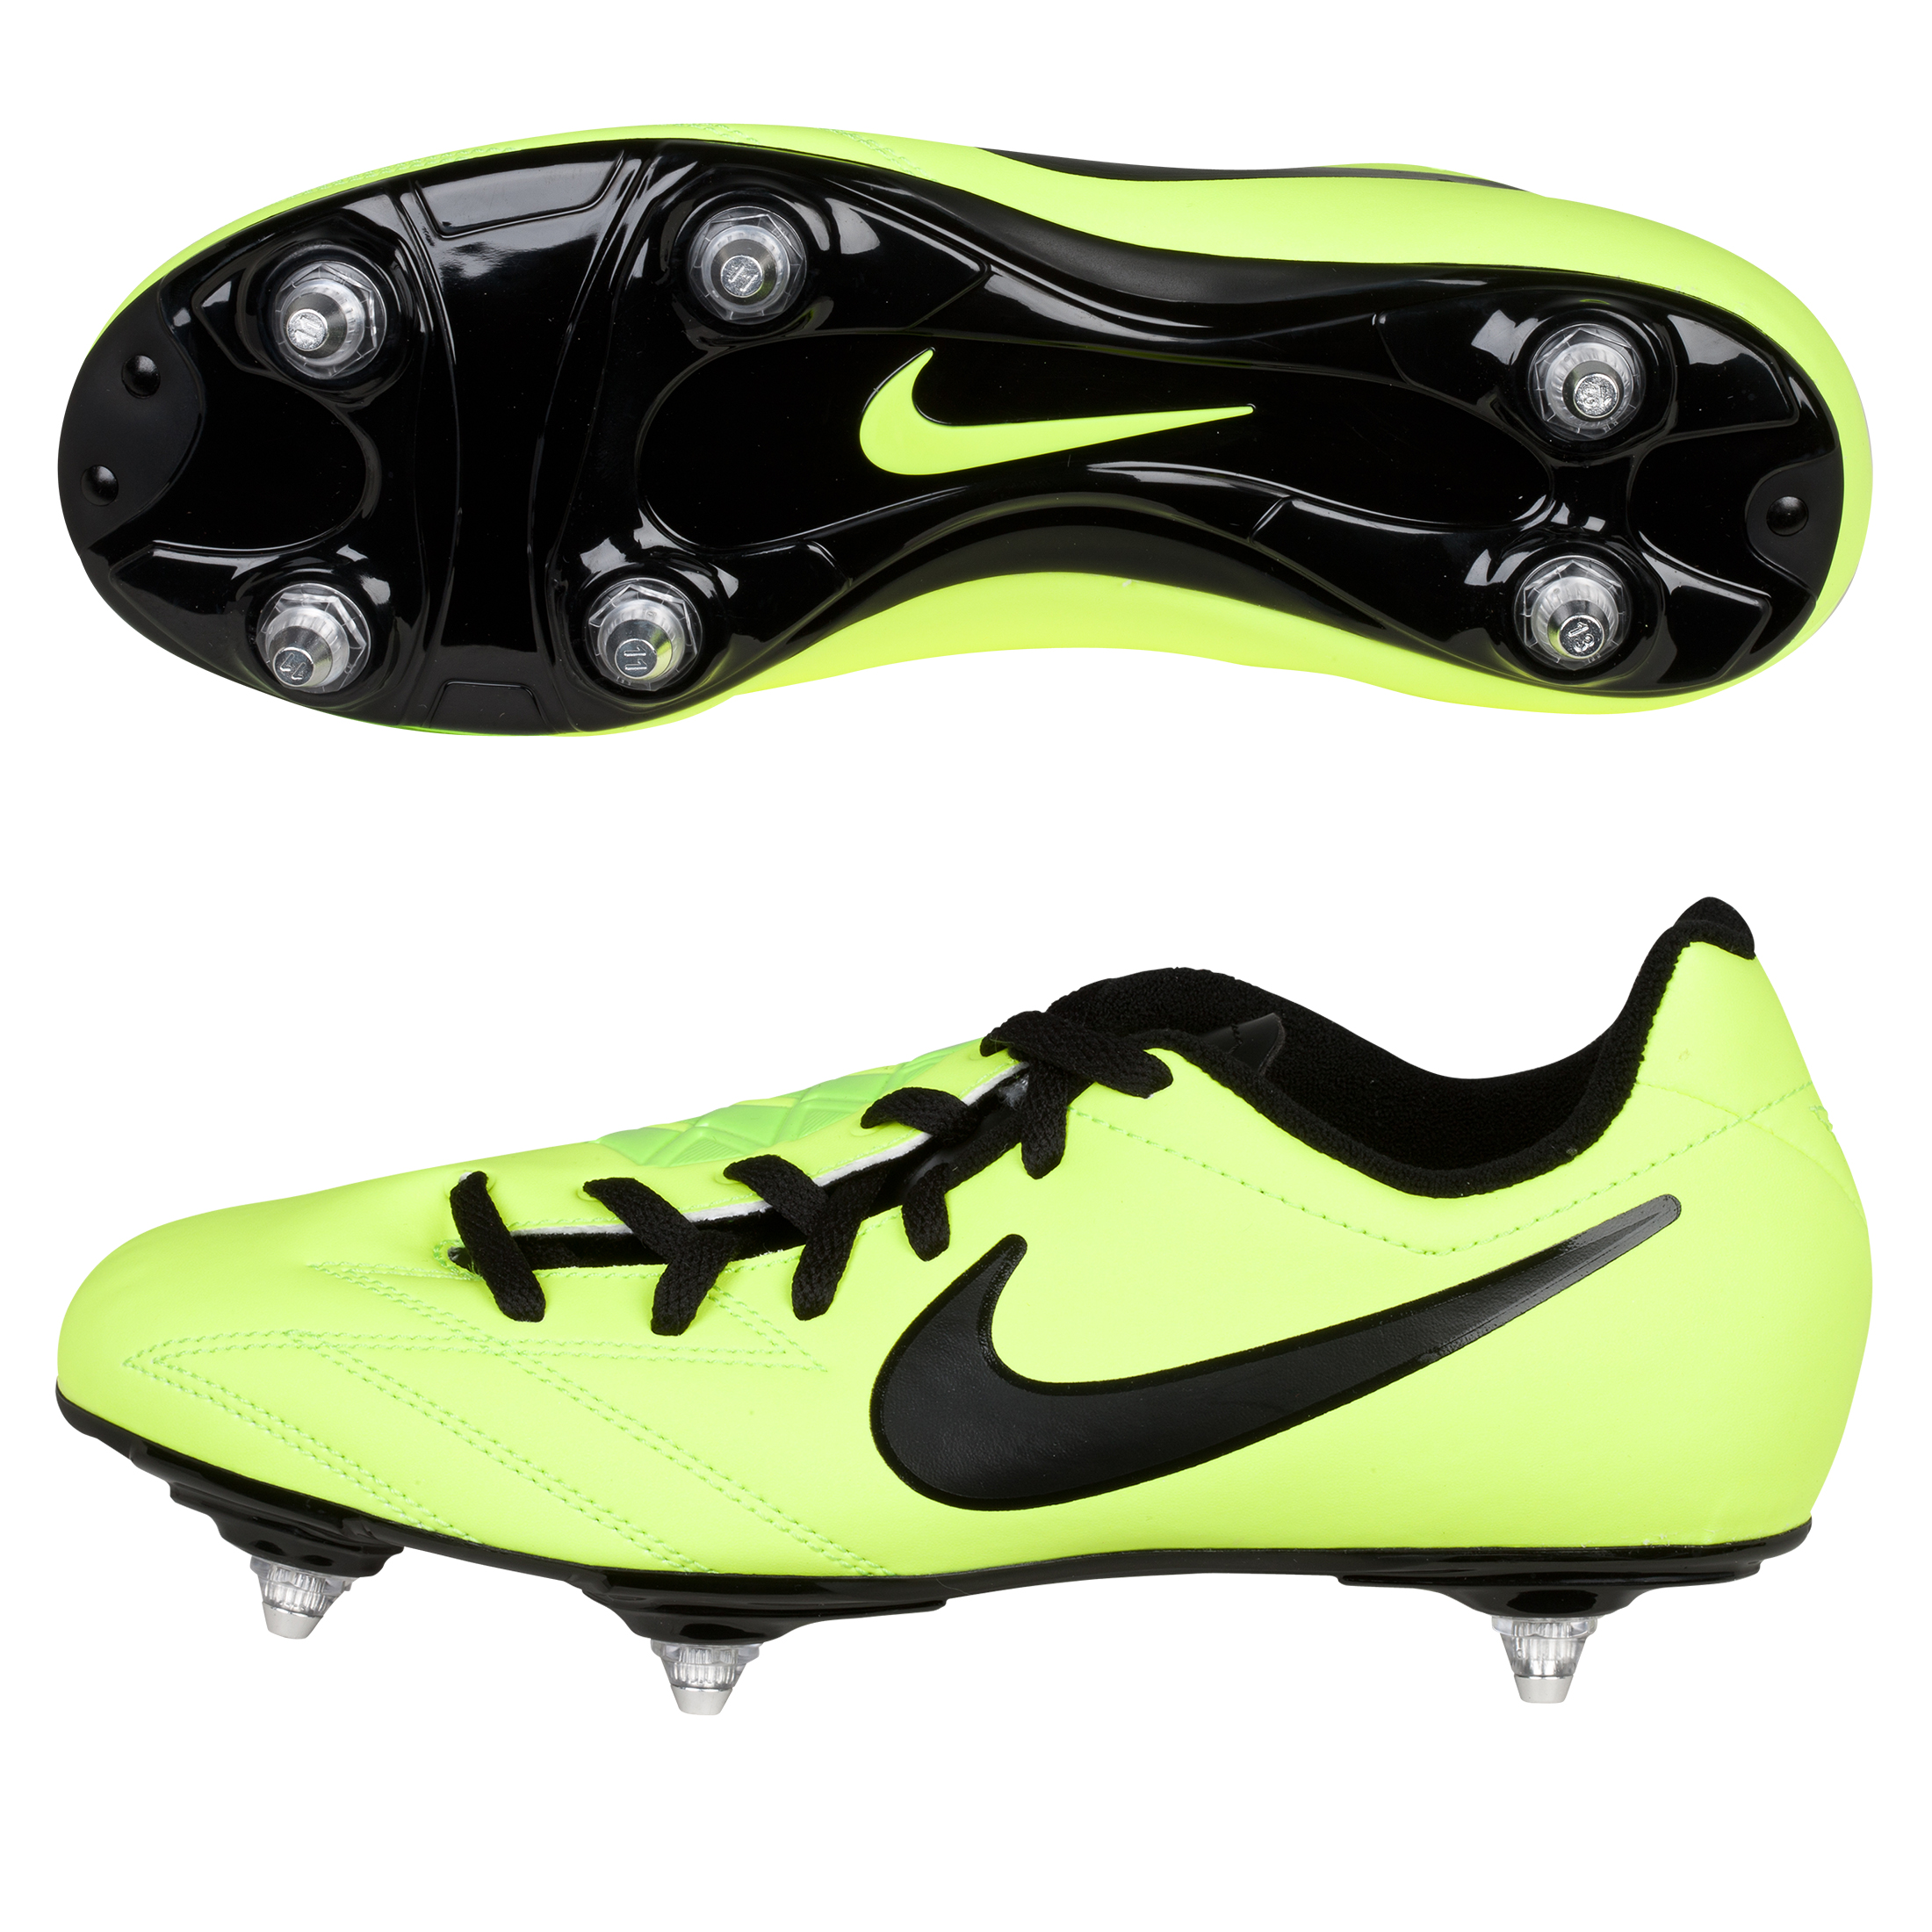 Nike Total90 Shoot IV Soft Ground Football Boots - Kids - Volt/Black/Citron